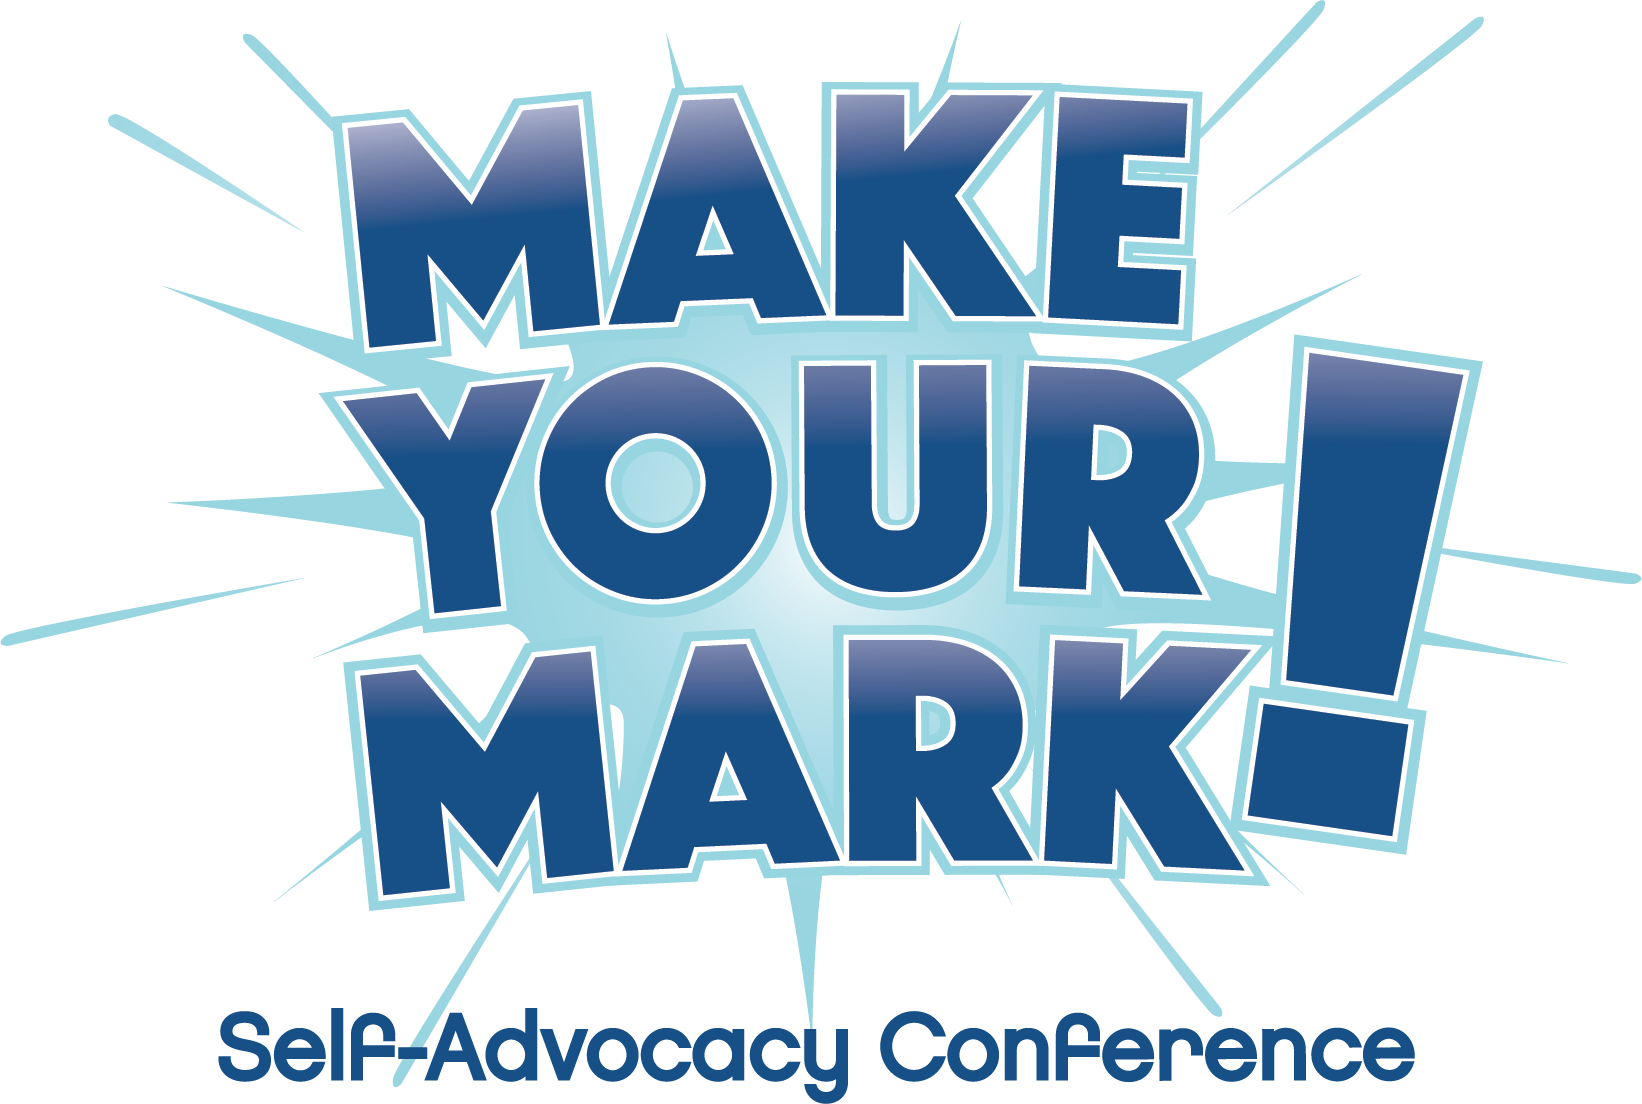 Make Your Mark! Conference logo